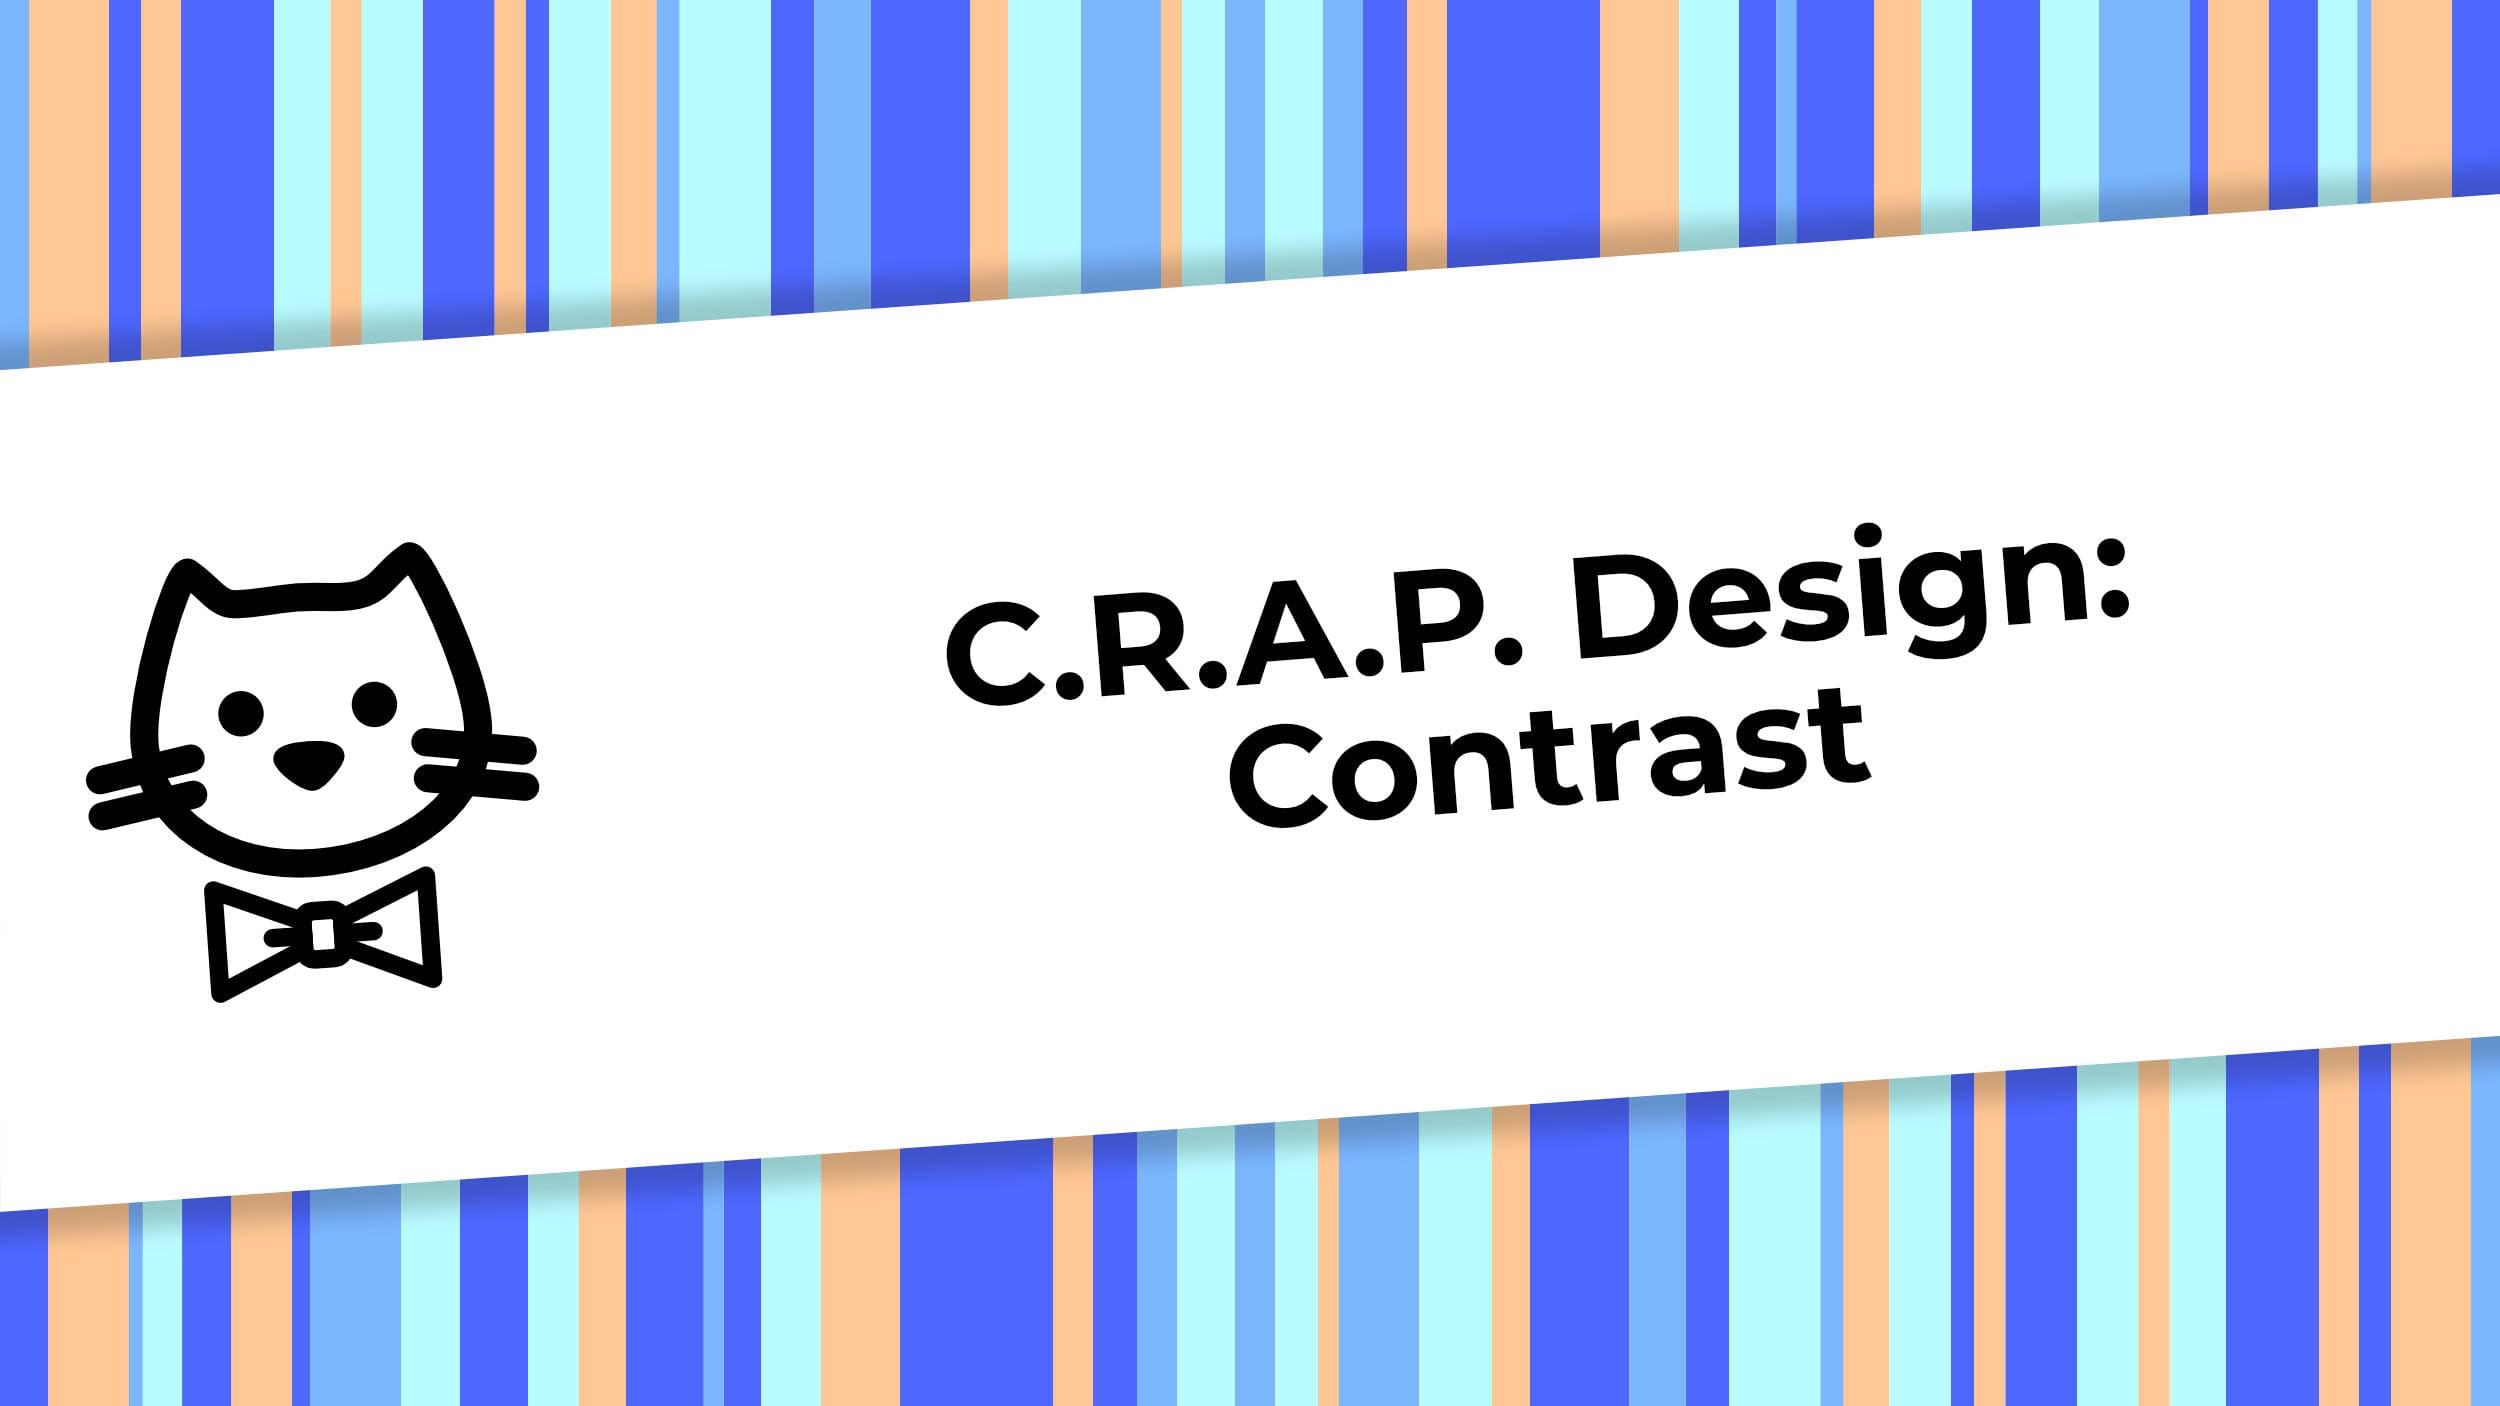 CRAP Design - Contrast.jpg